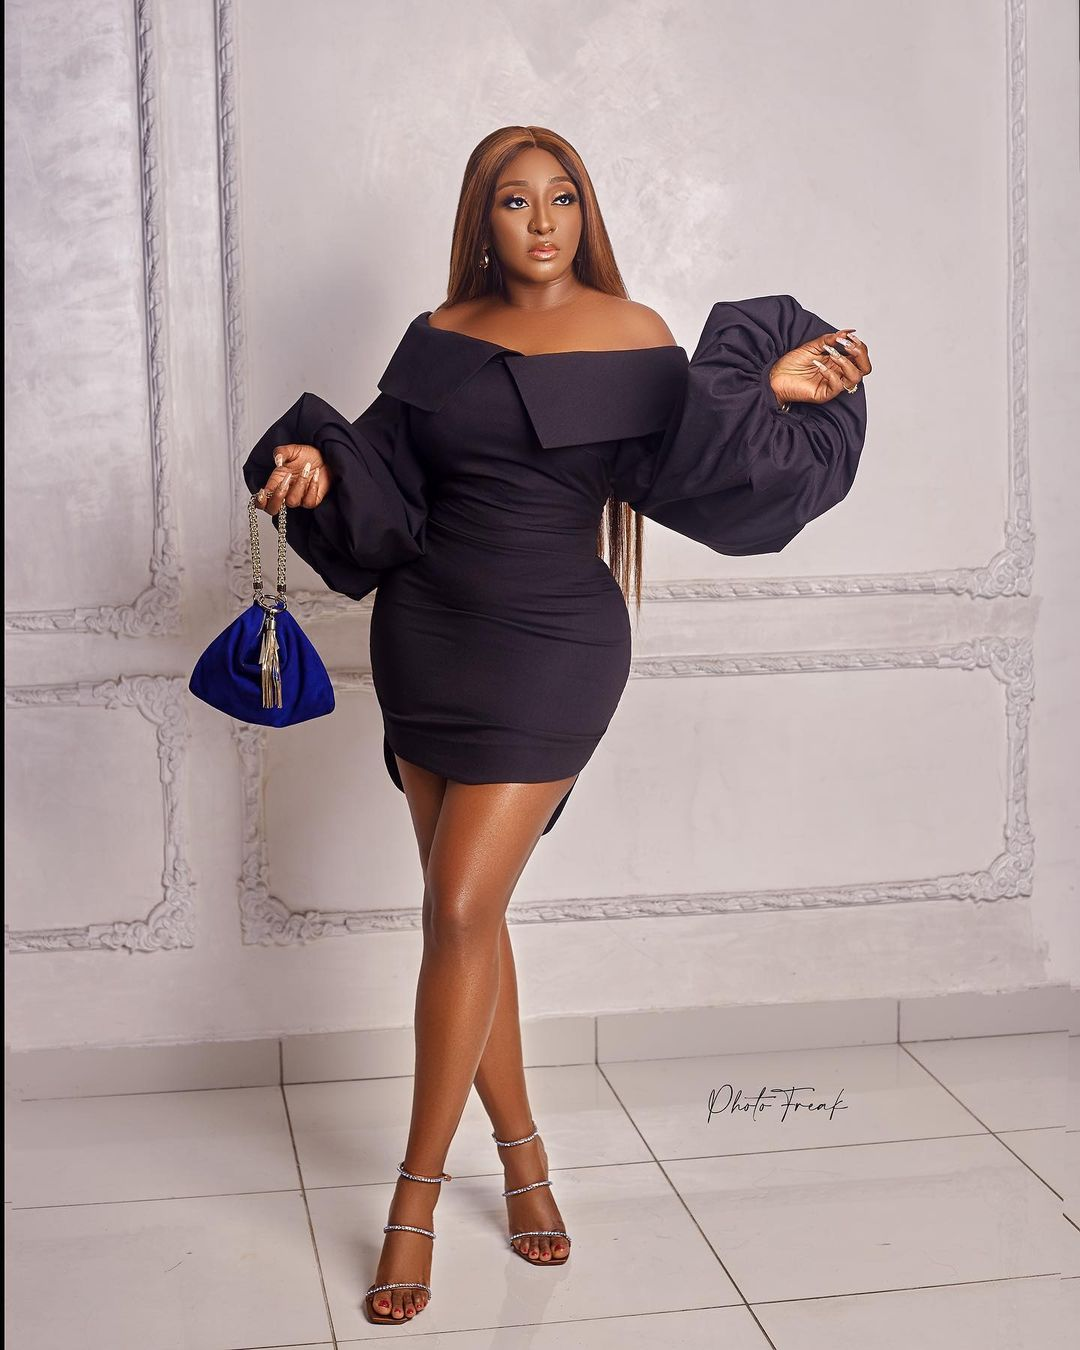 Ini Edo Keeps It Simple And Sassy In A Black Dress